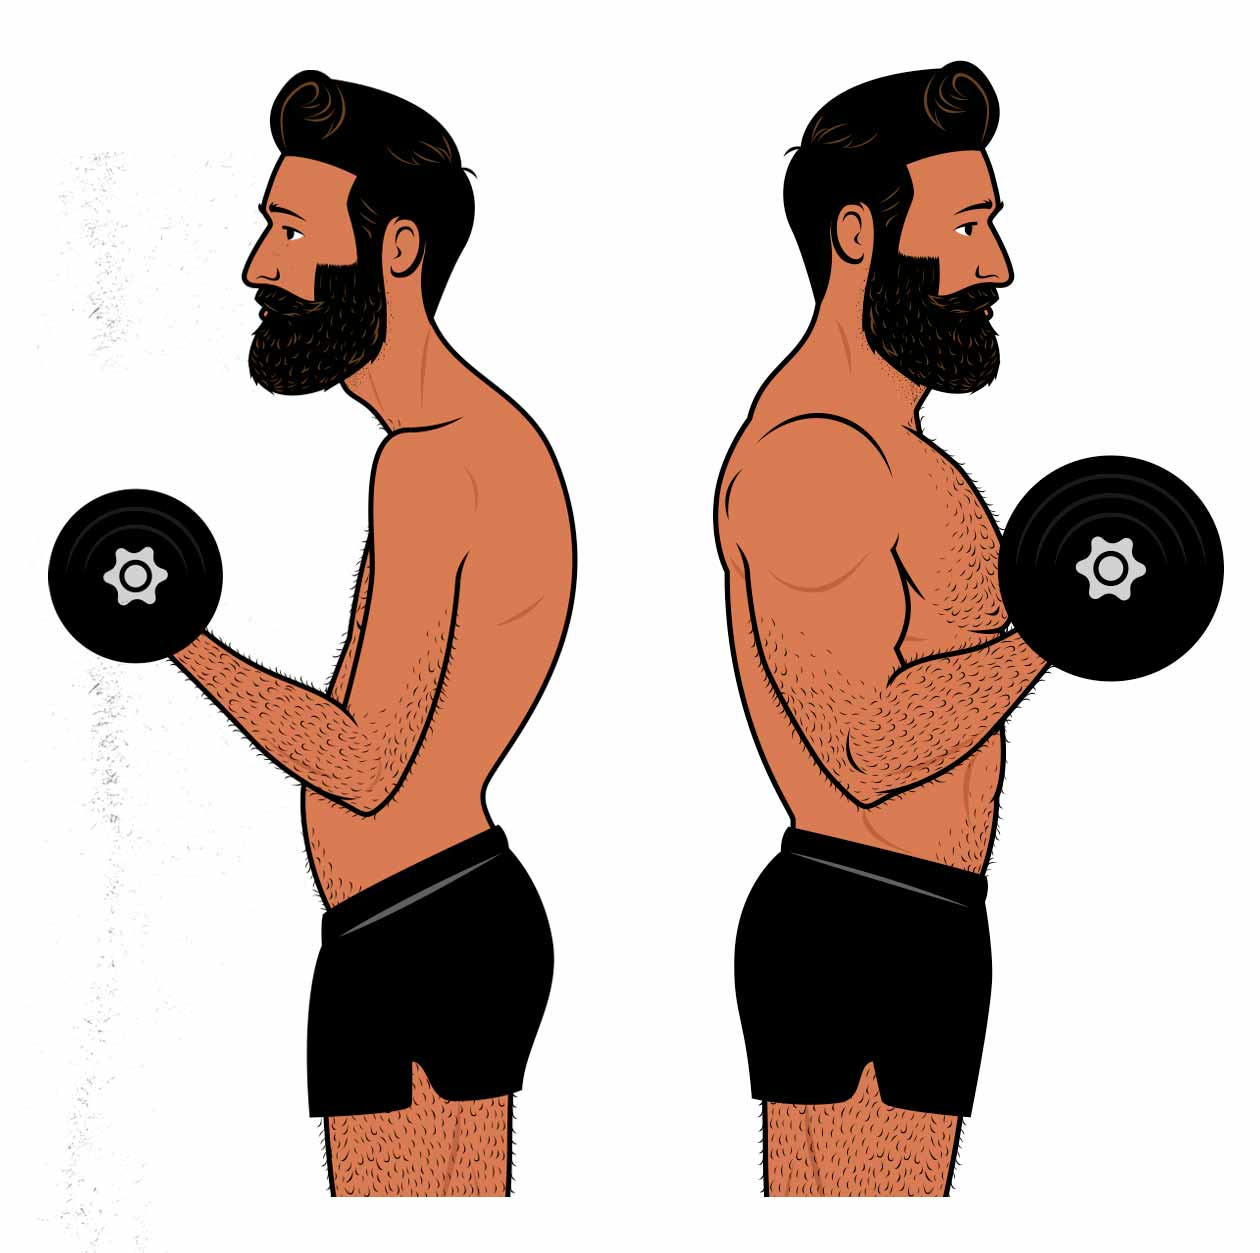 Illustration of a man using progressively heavier weights to become bigger, stronger, and more muscular.